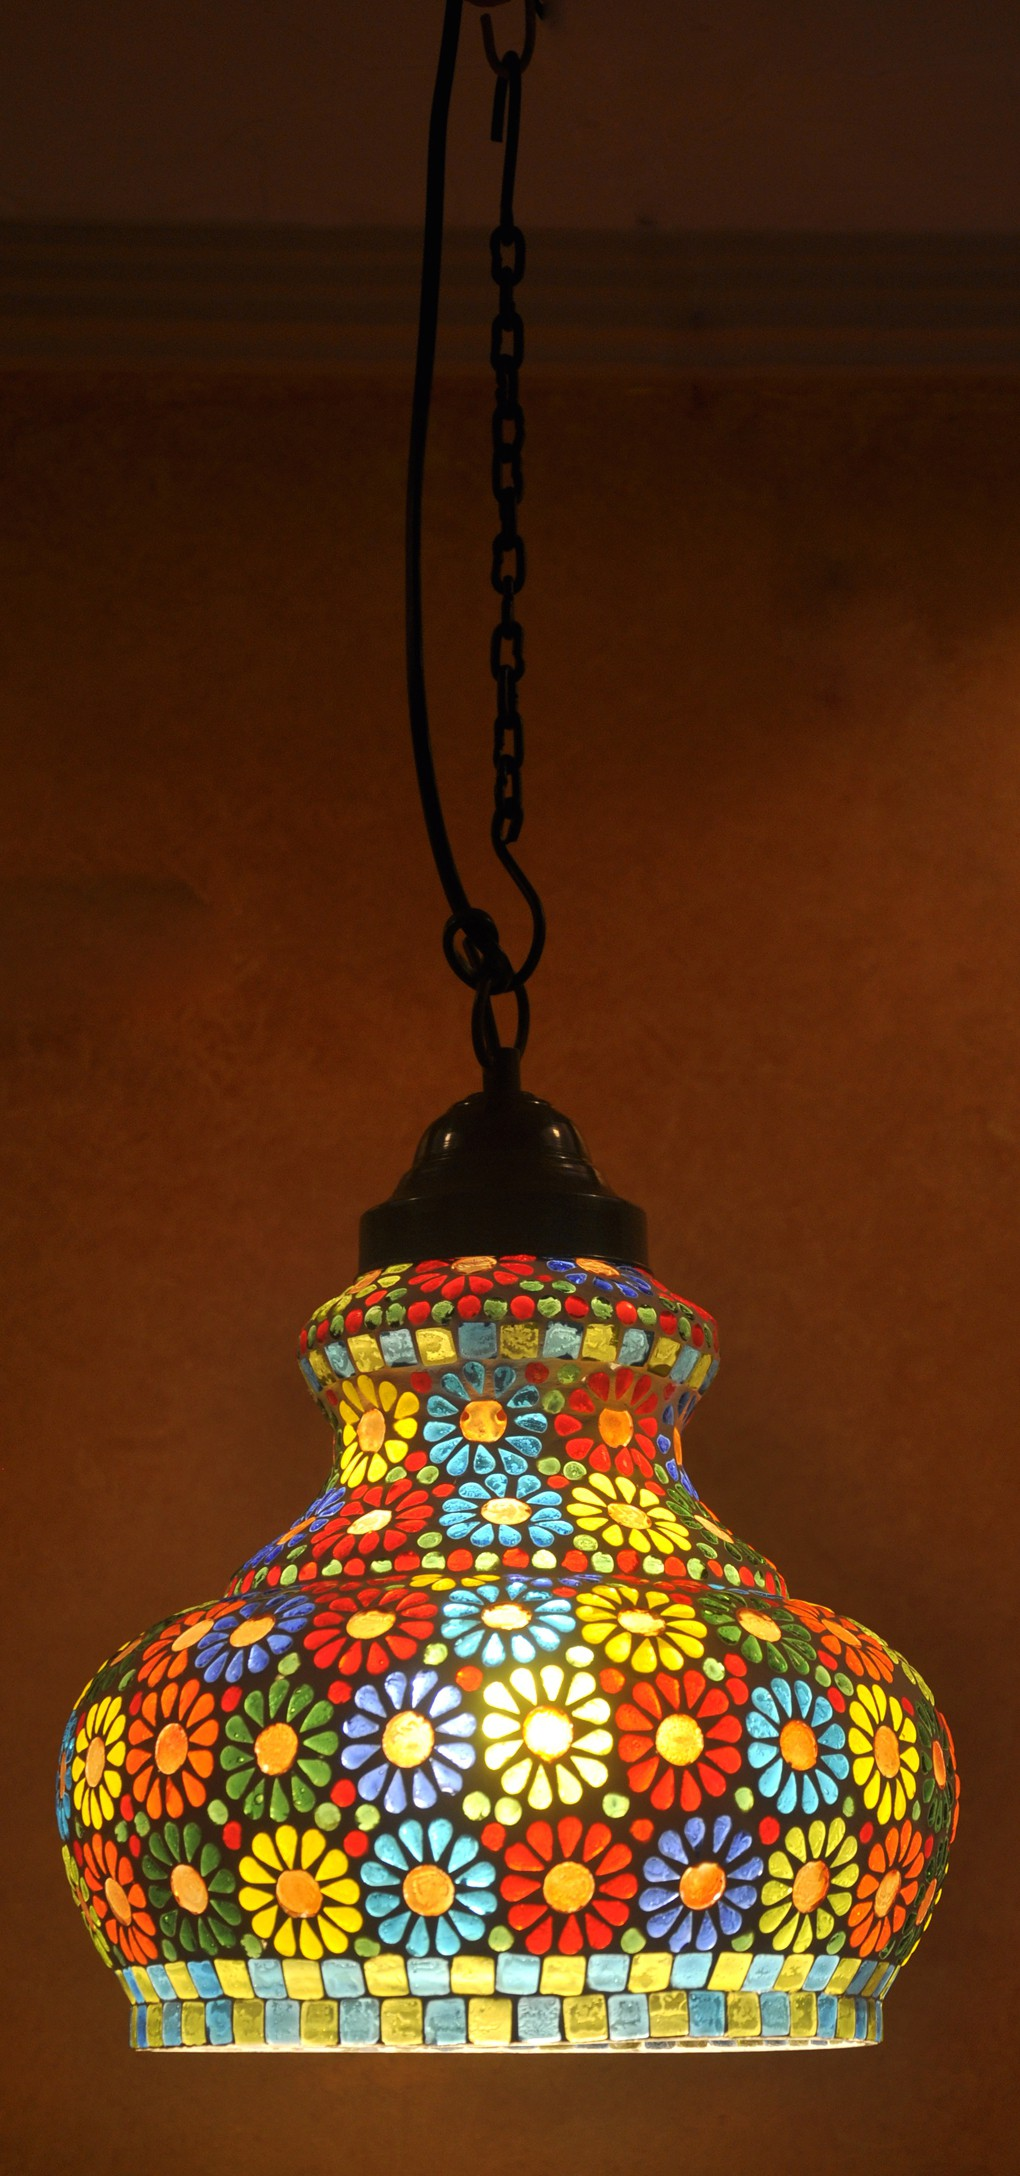 Lal Haveli Vintage Antique Mosaic Hanging Lamps Ceiling Pendant Lamps Night Light Multicolor Glass Lantern